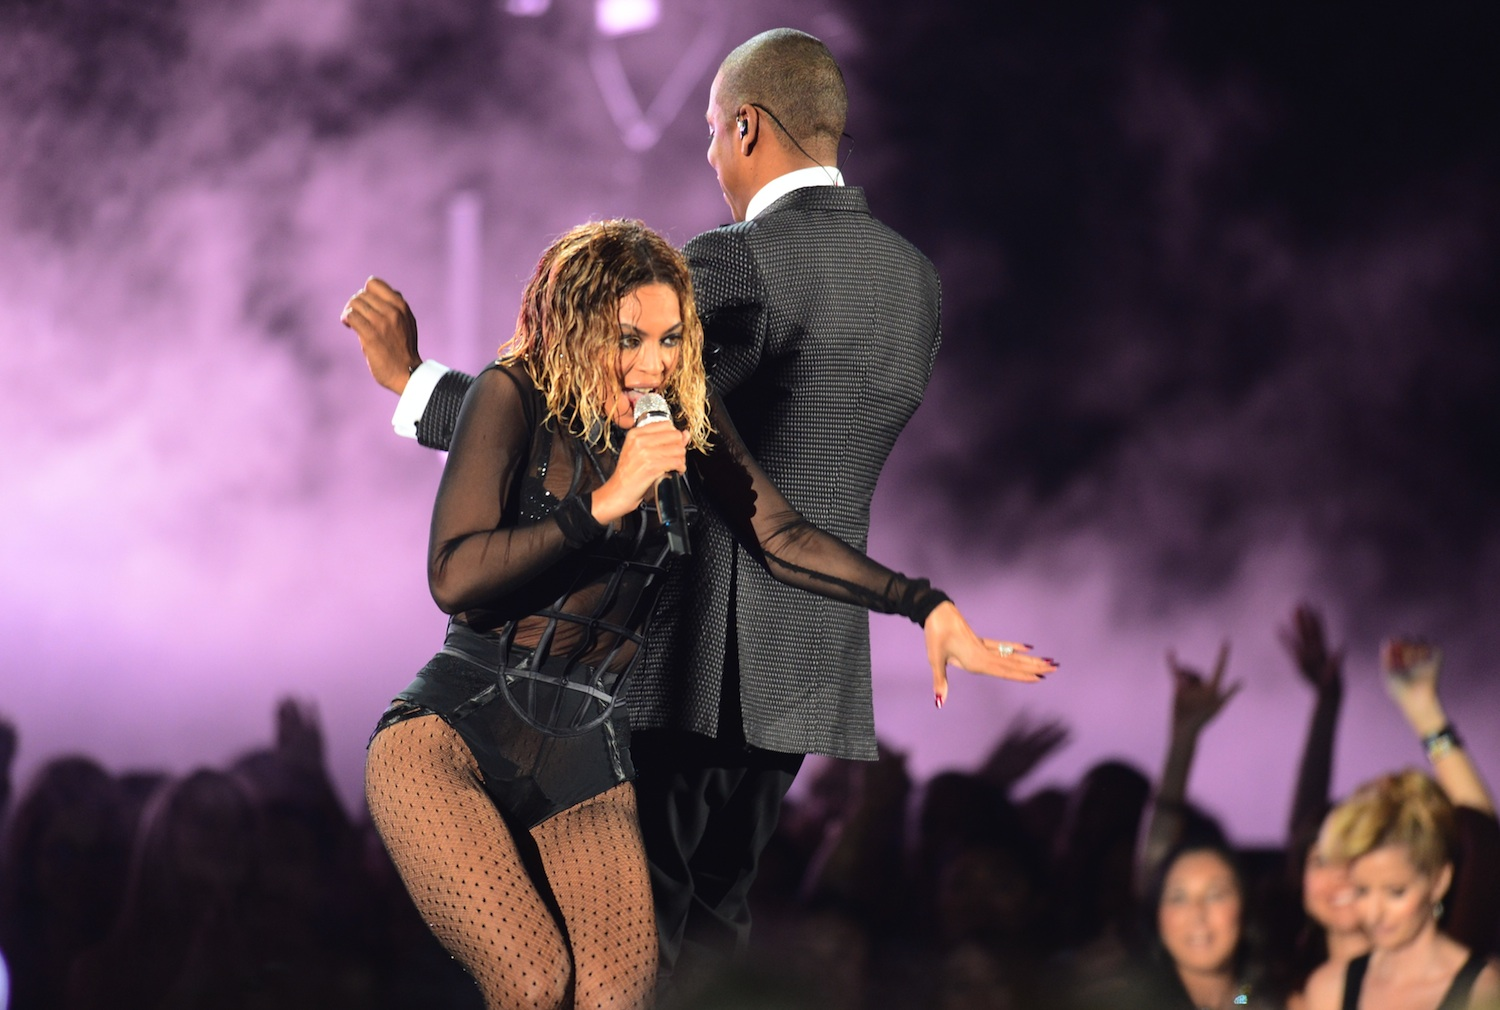 Beyonce Knowles and Jay-Z perform for the 56th Grammy Awards in Los Angeles on Jan. 26, 2014.